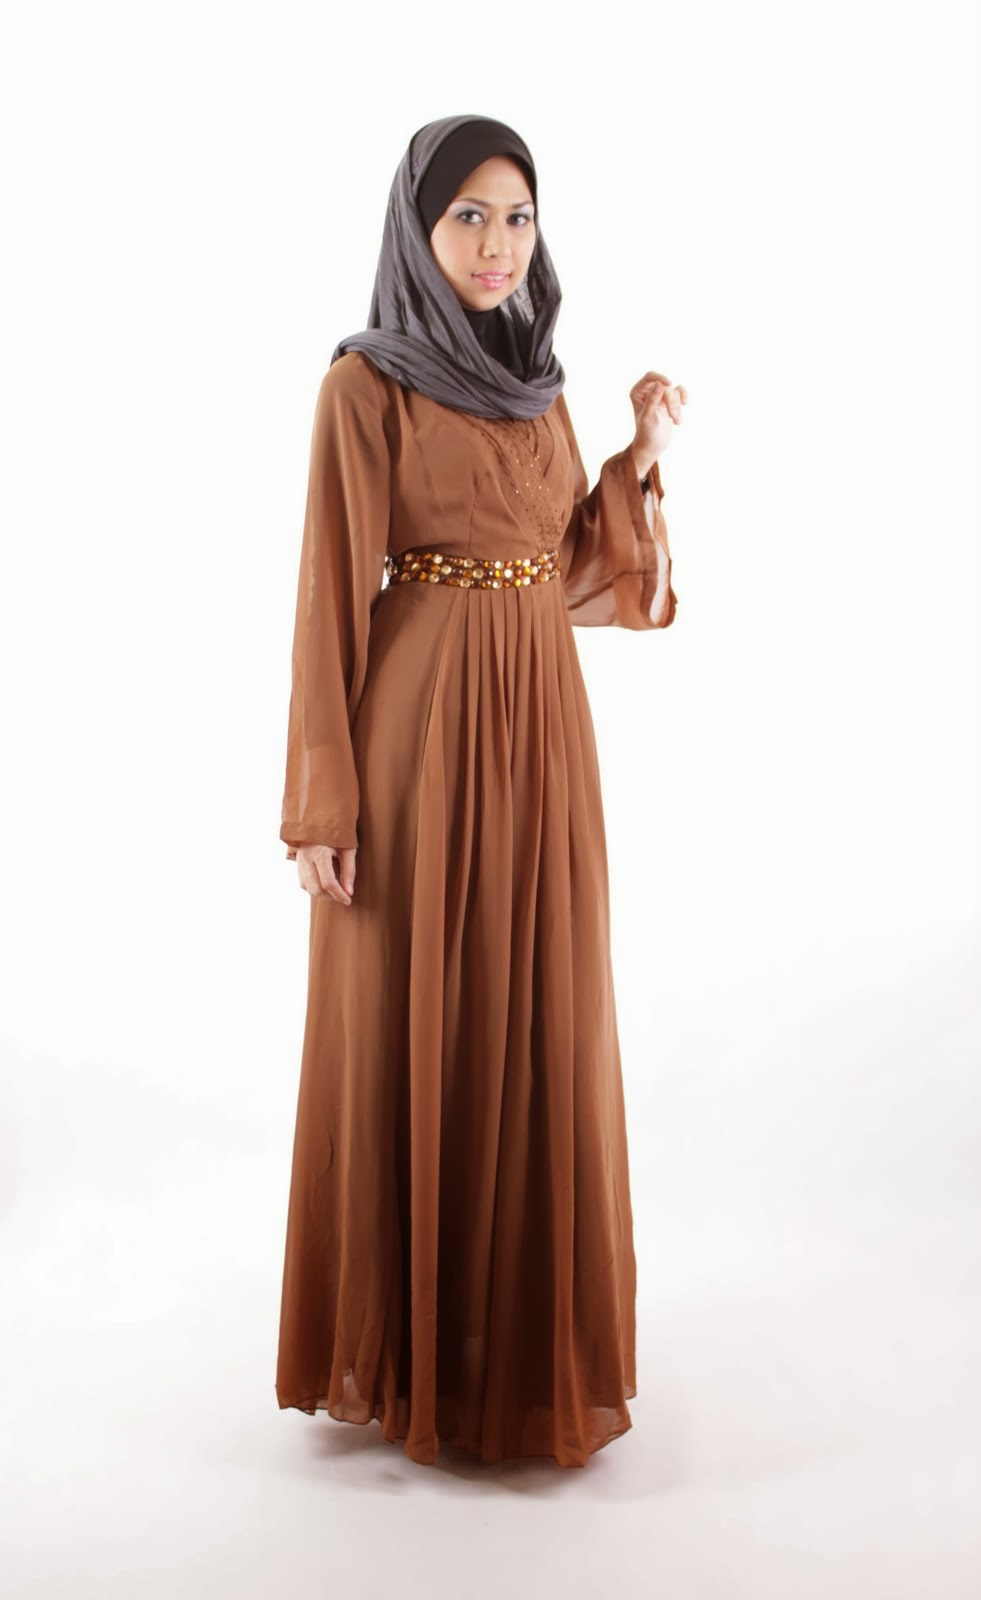 2014 Fashion Trends For Teens 2014 2015: Muslimah Fashion 2014